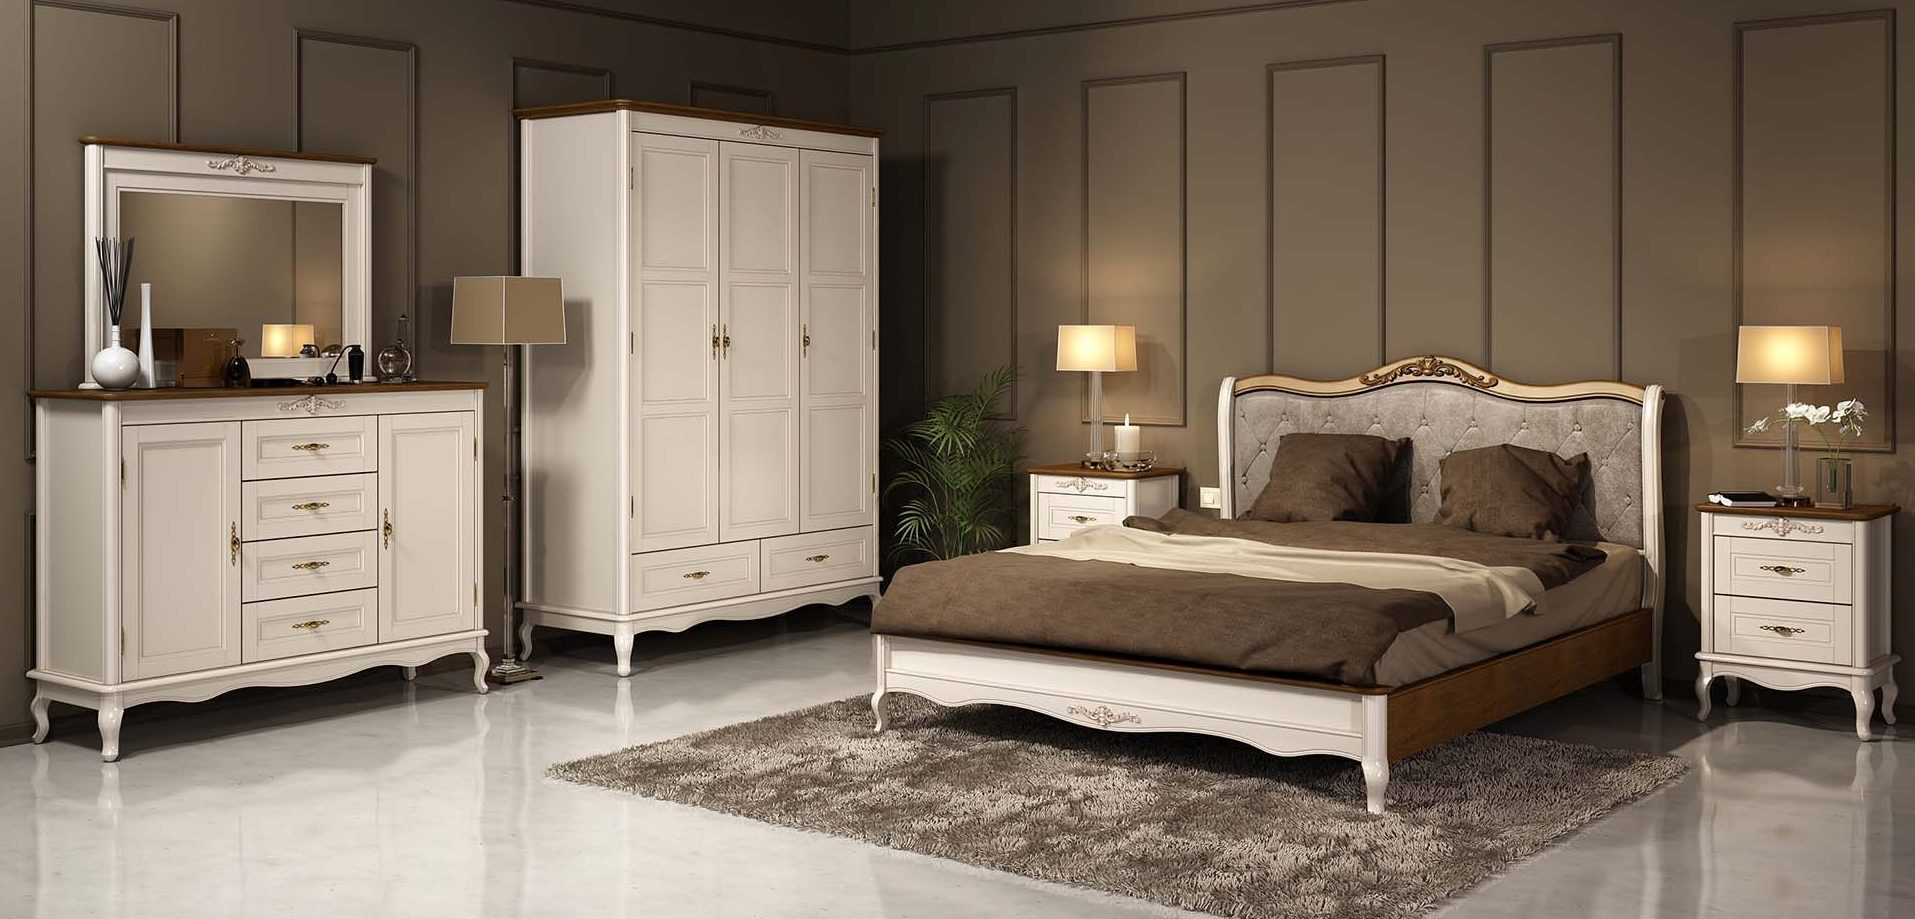 palermo_bedroom_2-e1500540873661